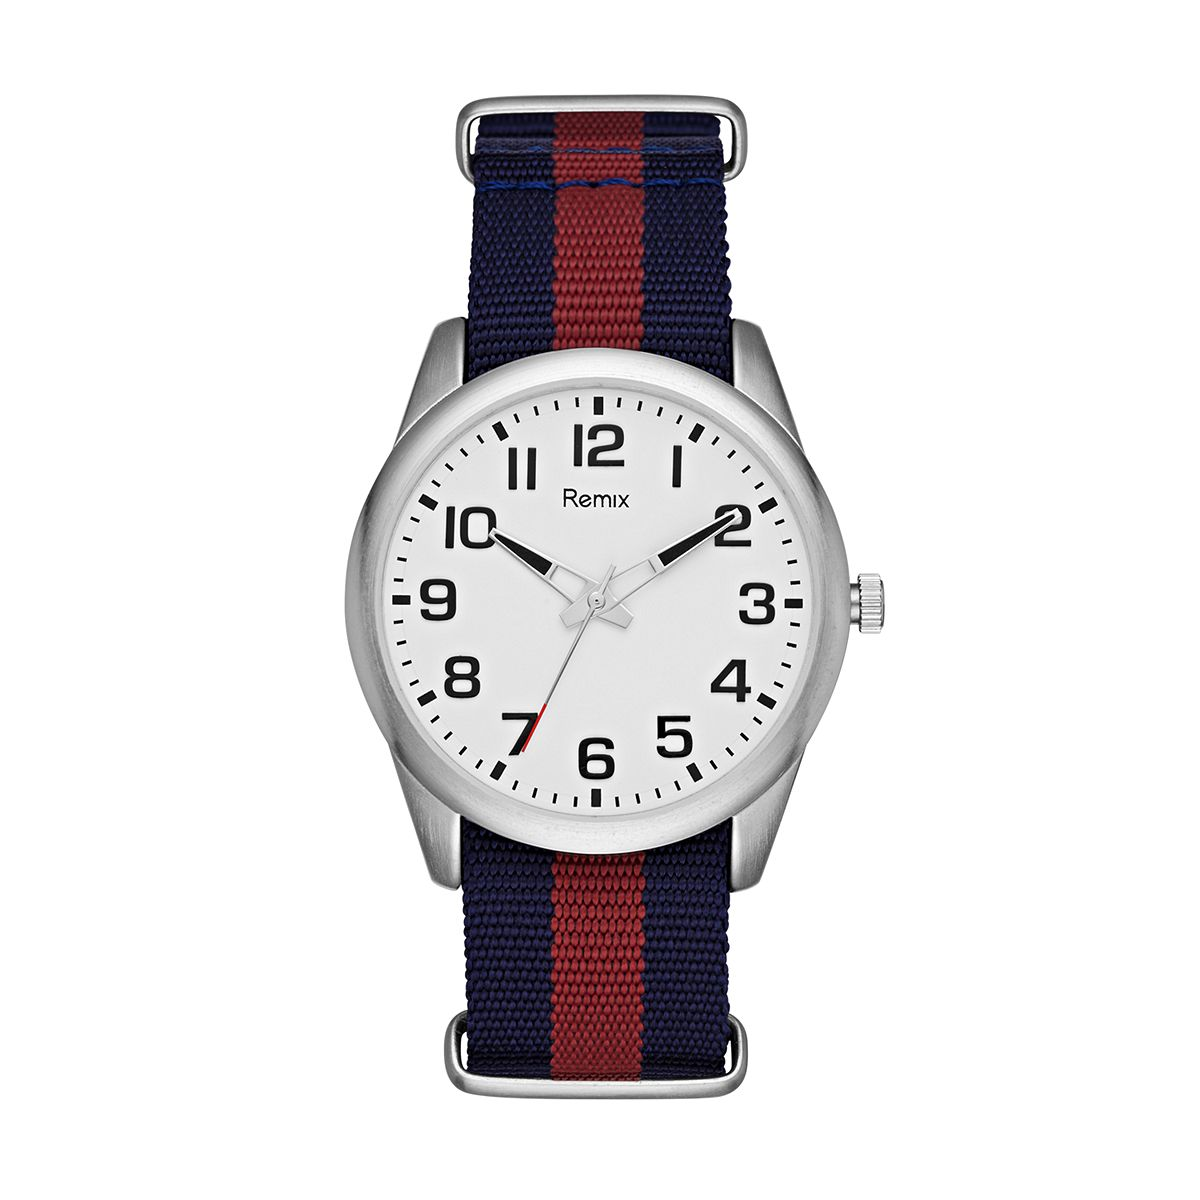 Navy & Red Nylon Strap  / Promotional product fully customized